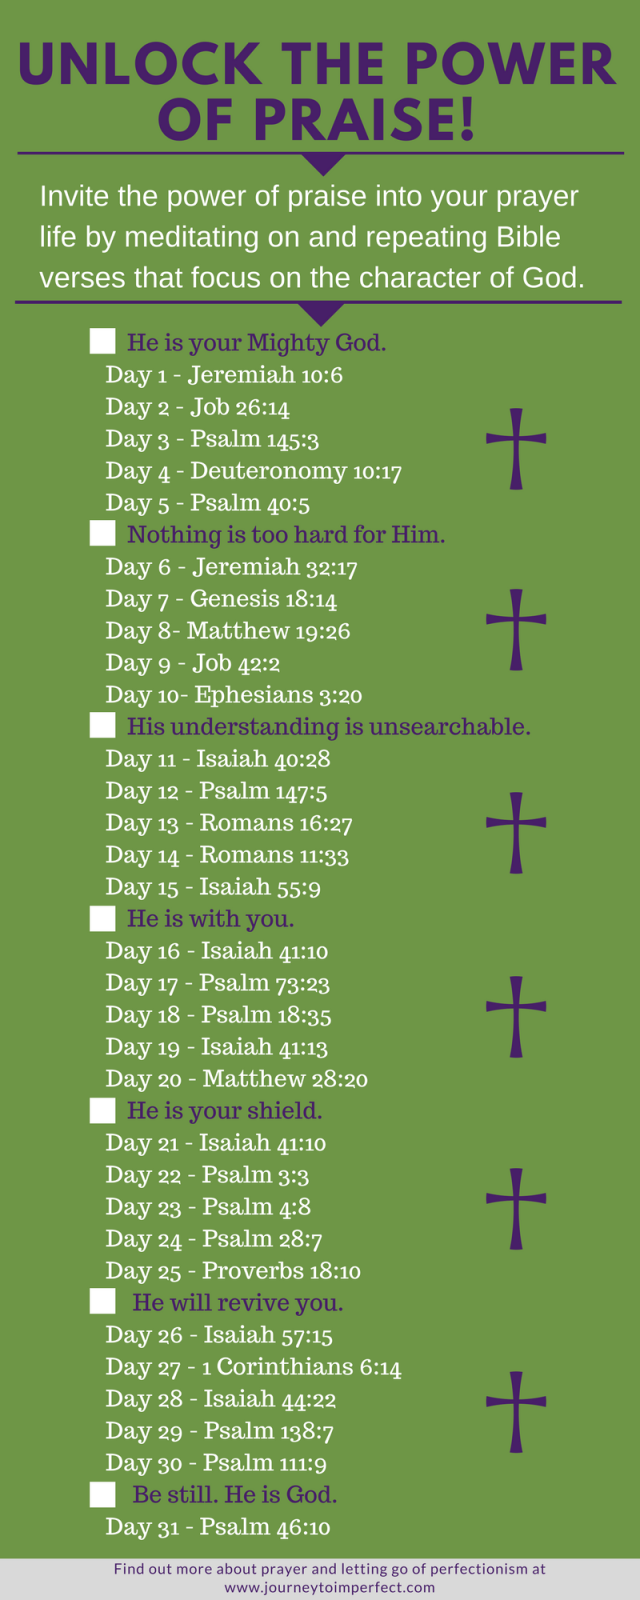 Have you ever felt like something was missing from your prayer life? It could be praise and worship. Unlock the power of praise in your prayer life with these 31 verses!  One verse a day is all it takes!  {Click for more FREE PRINTABLES!}